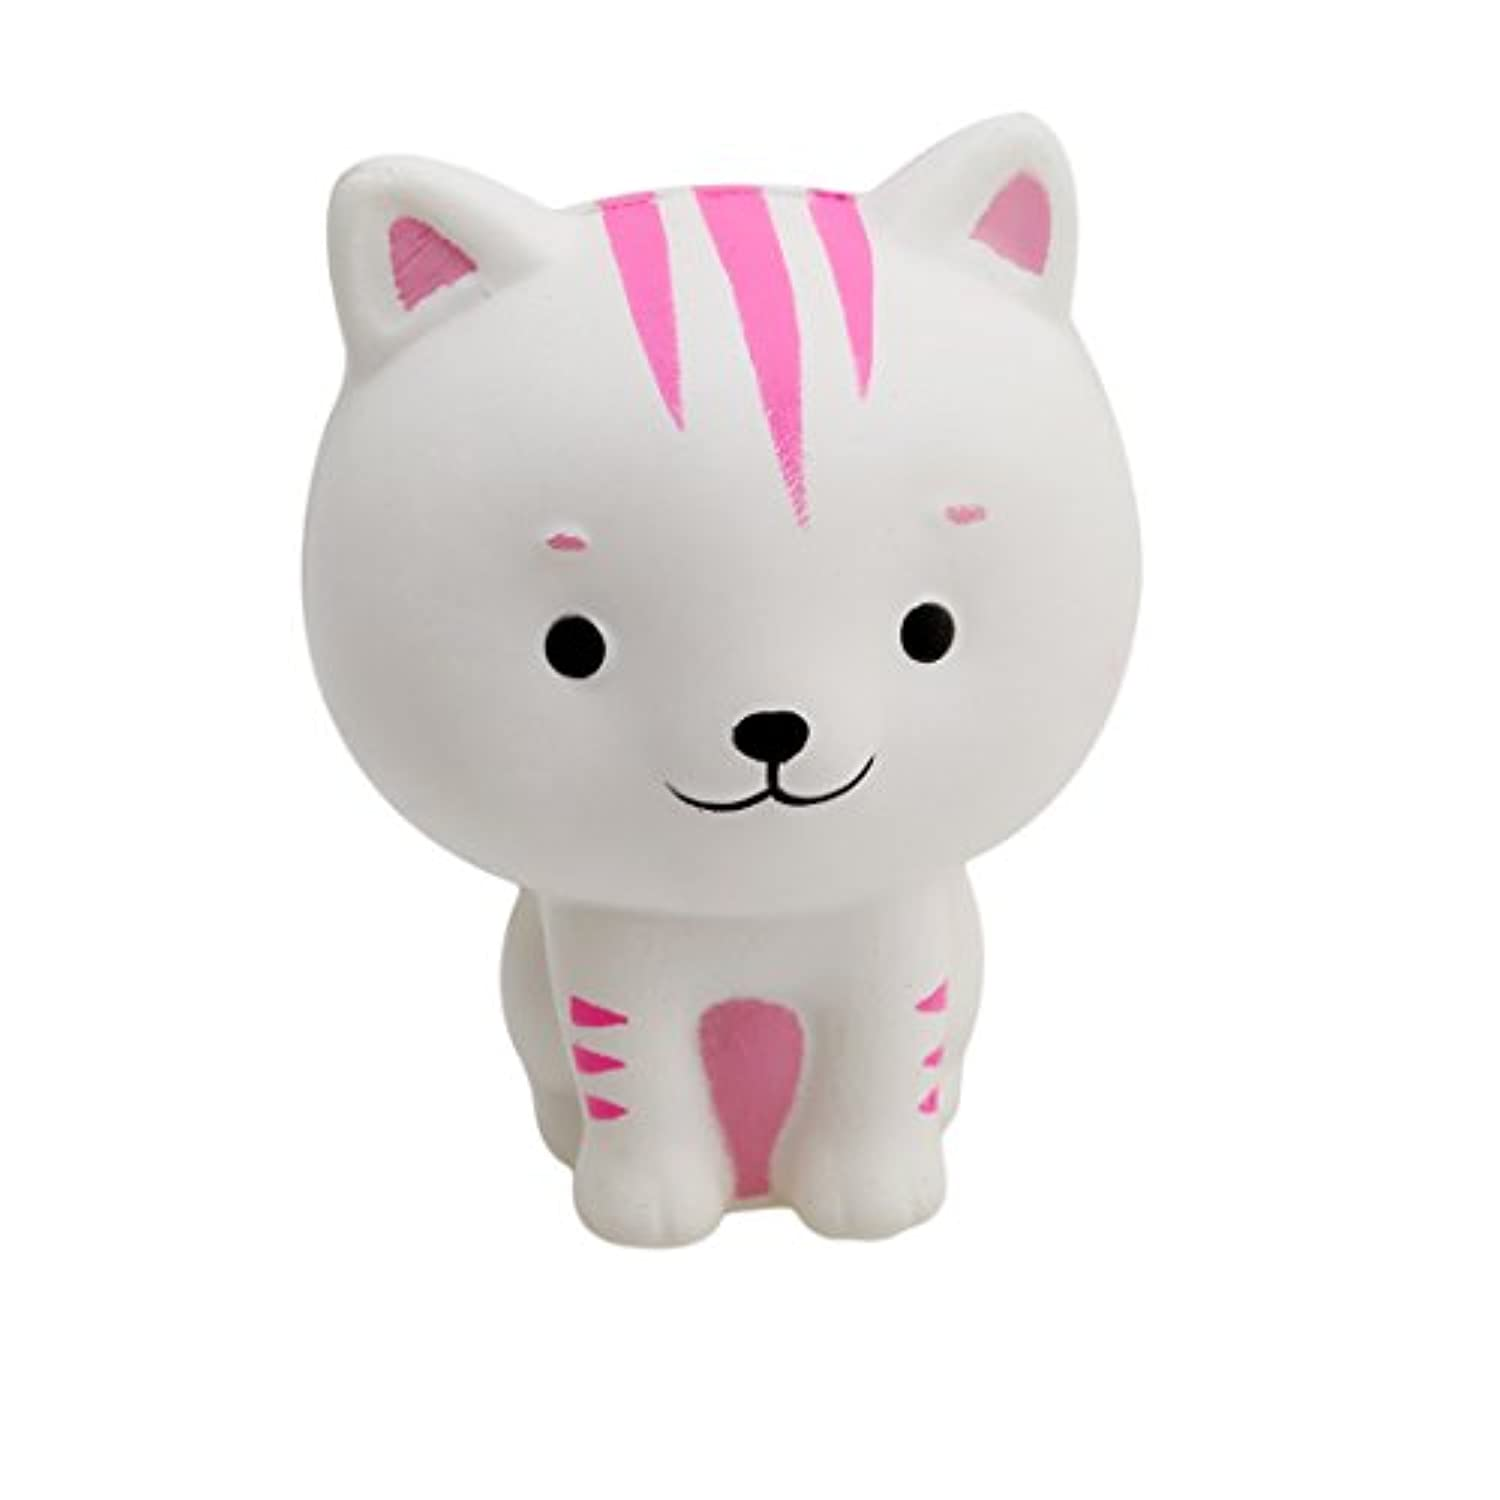 EdtoyホワイトSmall Cats Slow Rising Squeeze Small Mini Stress Relief Toy